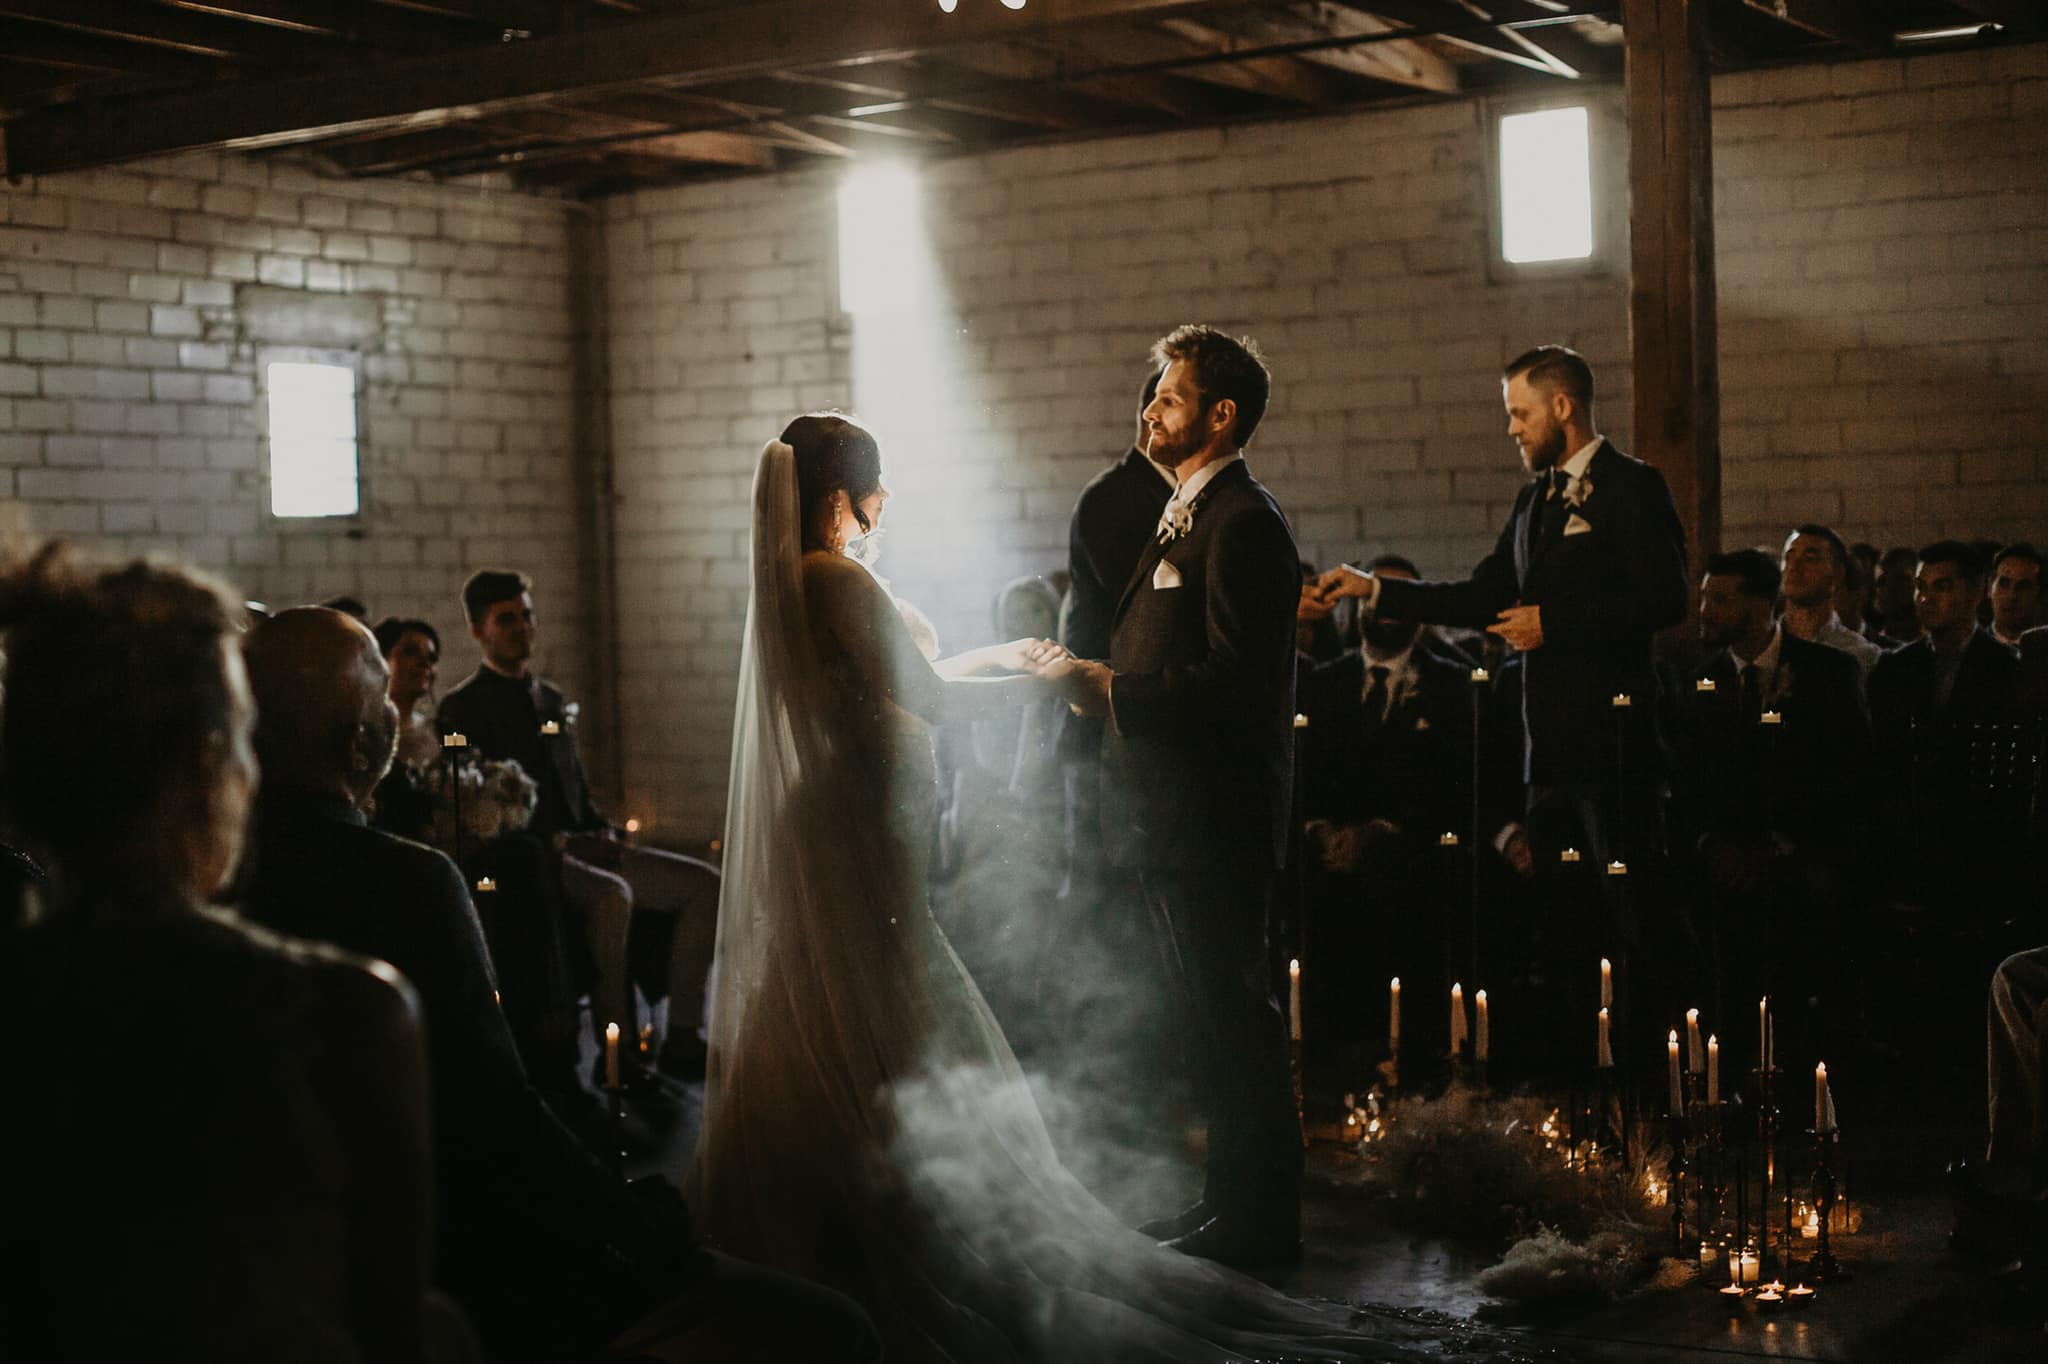 a wedding ceremony in a very dark room where the sunlight from outside shines on the wedding couple